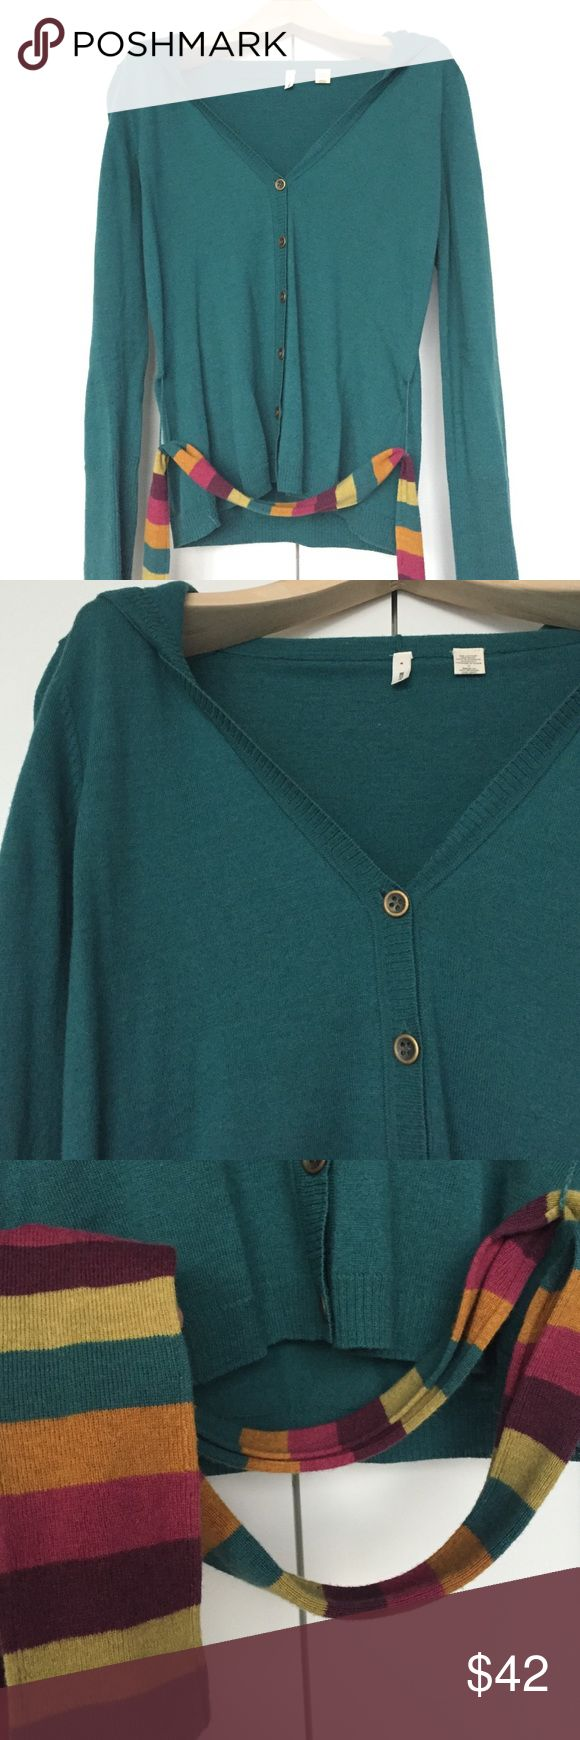 Turquoise Cardigan with Multicolor Belt and Hood This hooded turquoise cardigan has a bright multicolor belt attached that really pops! By Anthropologie brand Moth. V-neck with brass buttons down the front. In excellent condition, very slight pilling but otherwise has only been worn a few times. Anthropologie Sweaters Cardigans